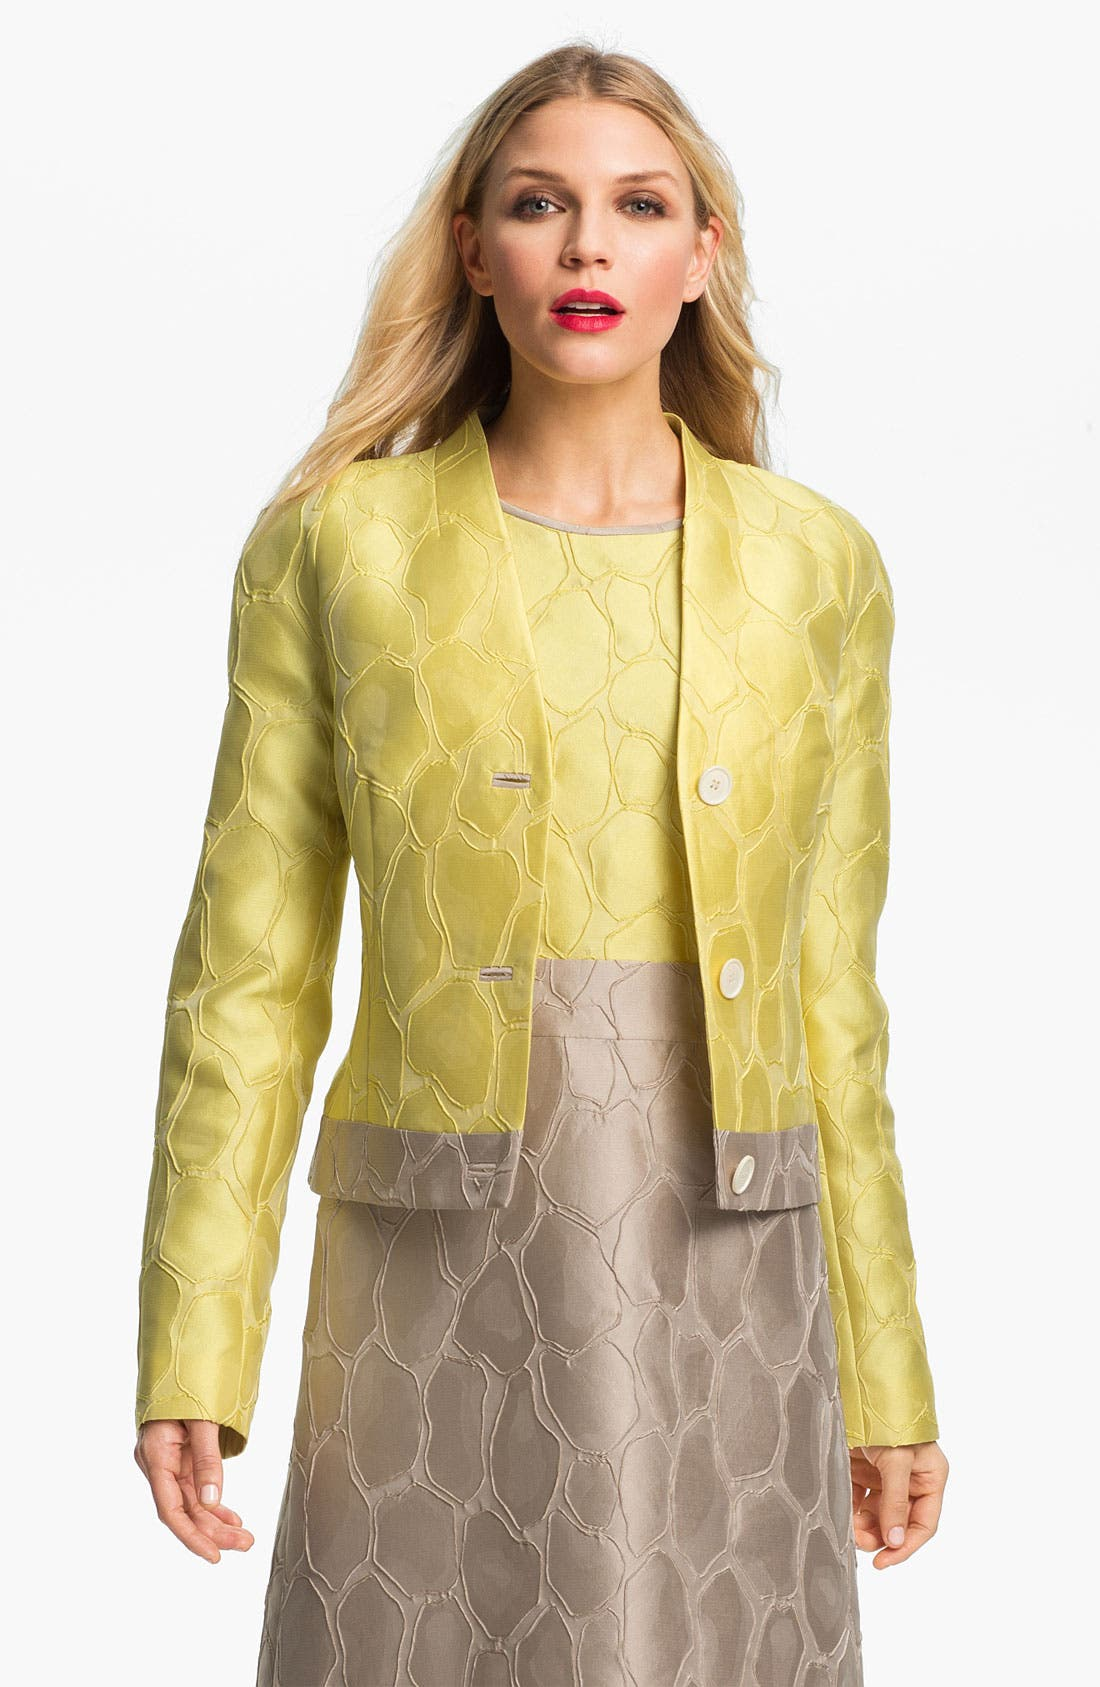 Alternate Image 1 Selected - Lafayette 148 New York 'Mala' Giraffe Jacquard Jacket